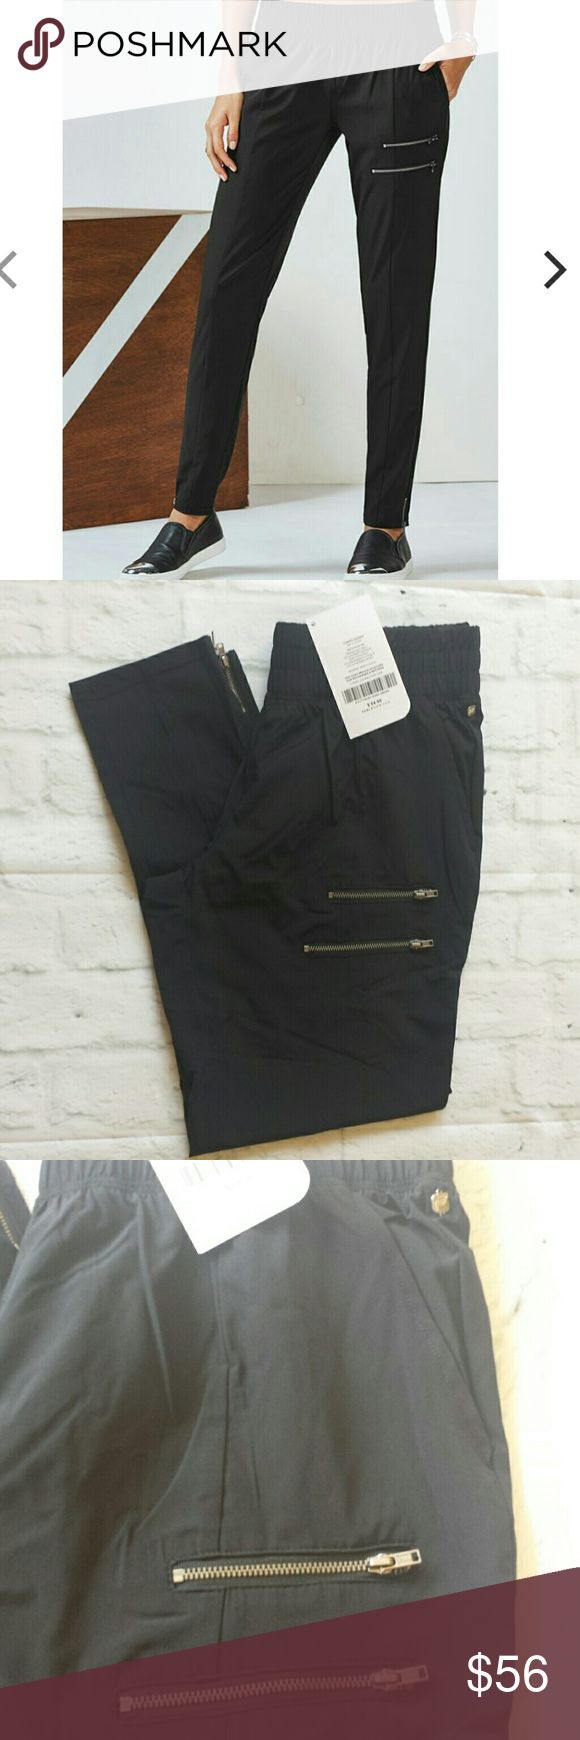 Fabletics Yumiko Jogger with Zipper Details Approximate measurements: - Waist 16 inches - Inseam 27 1/2 niches - leg opening 5 1/2 inches  No trades.  Please submit any offers via the offer option Fabletics Pants